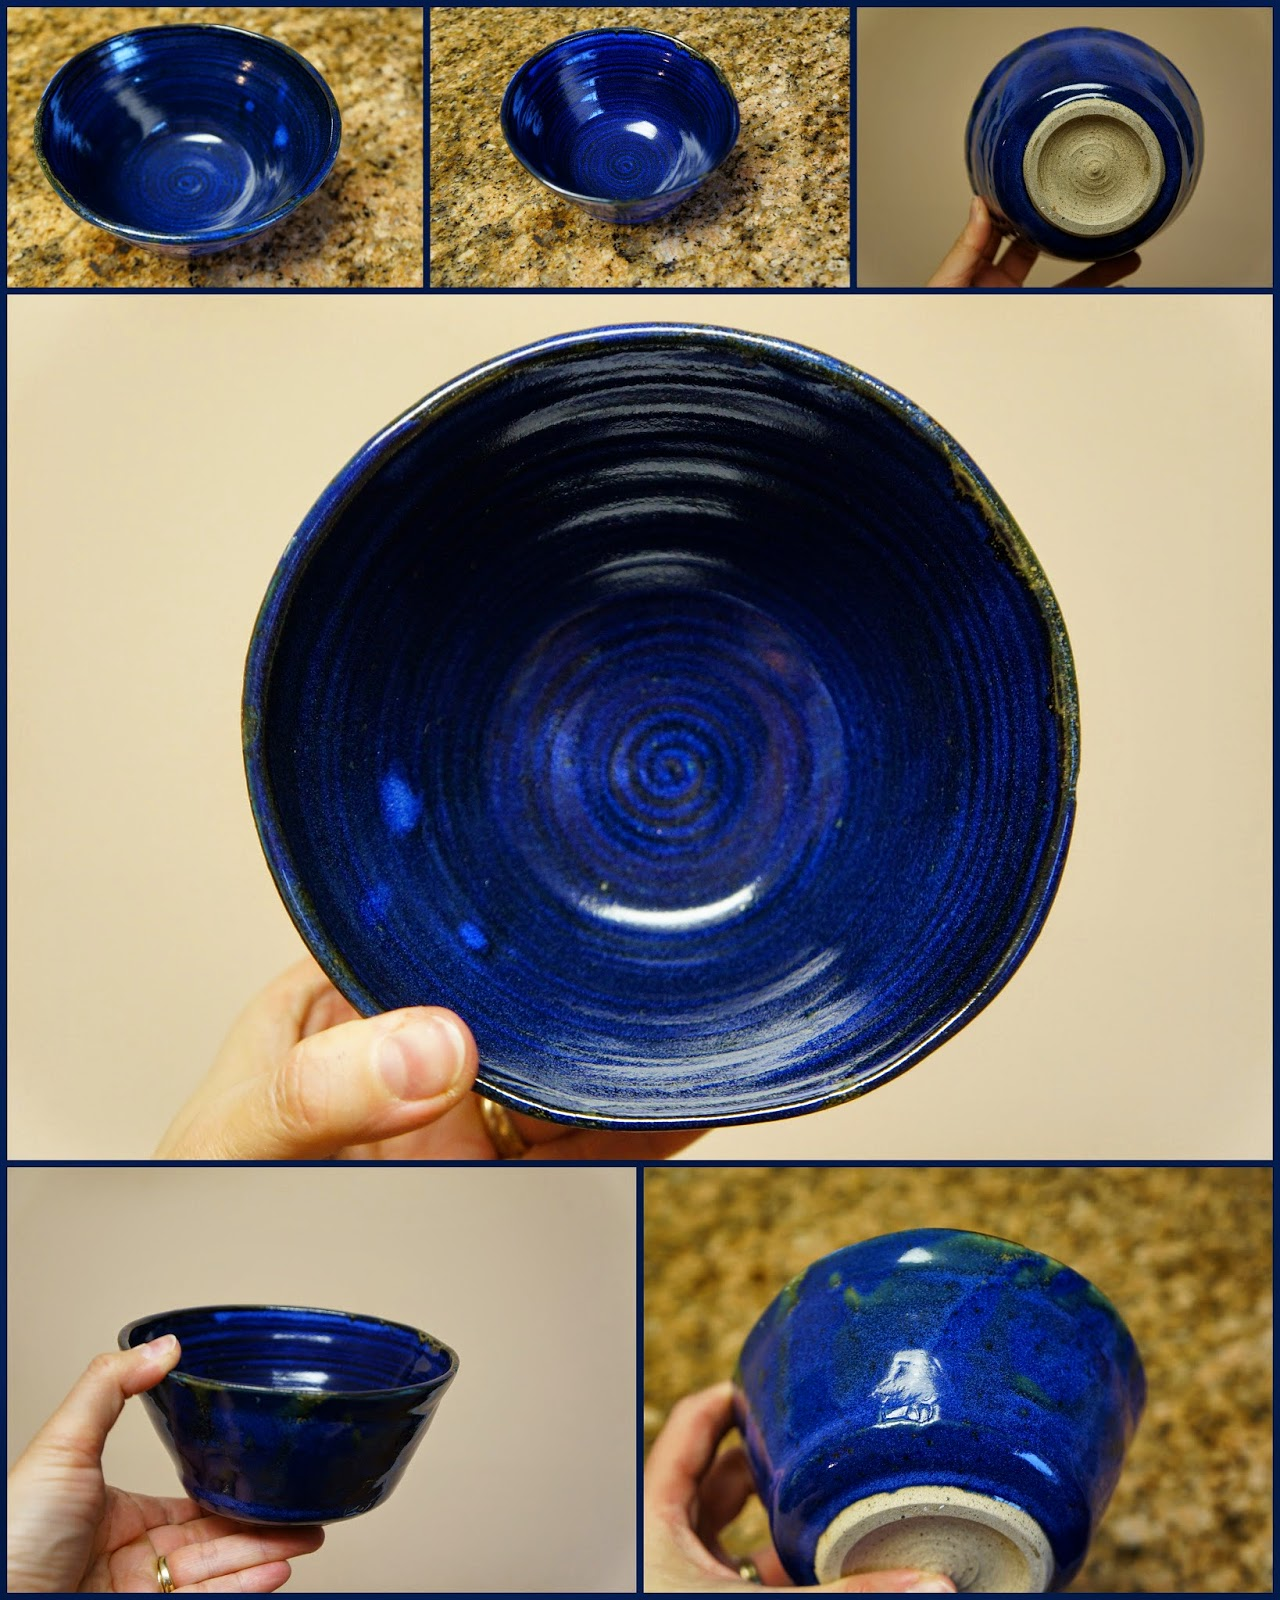 Unique handmade pottery / stoneware dish with swirly design inside and deep blue glaze.